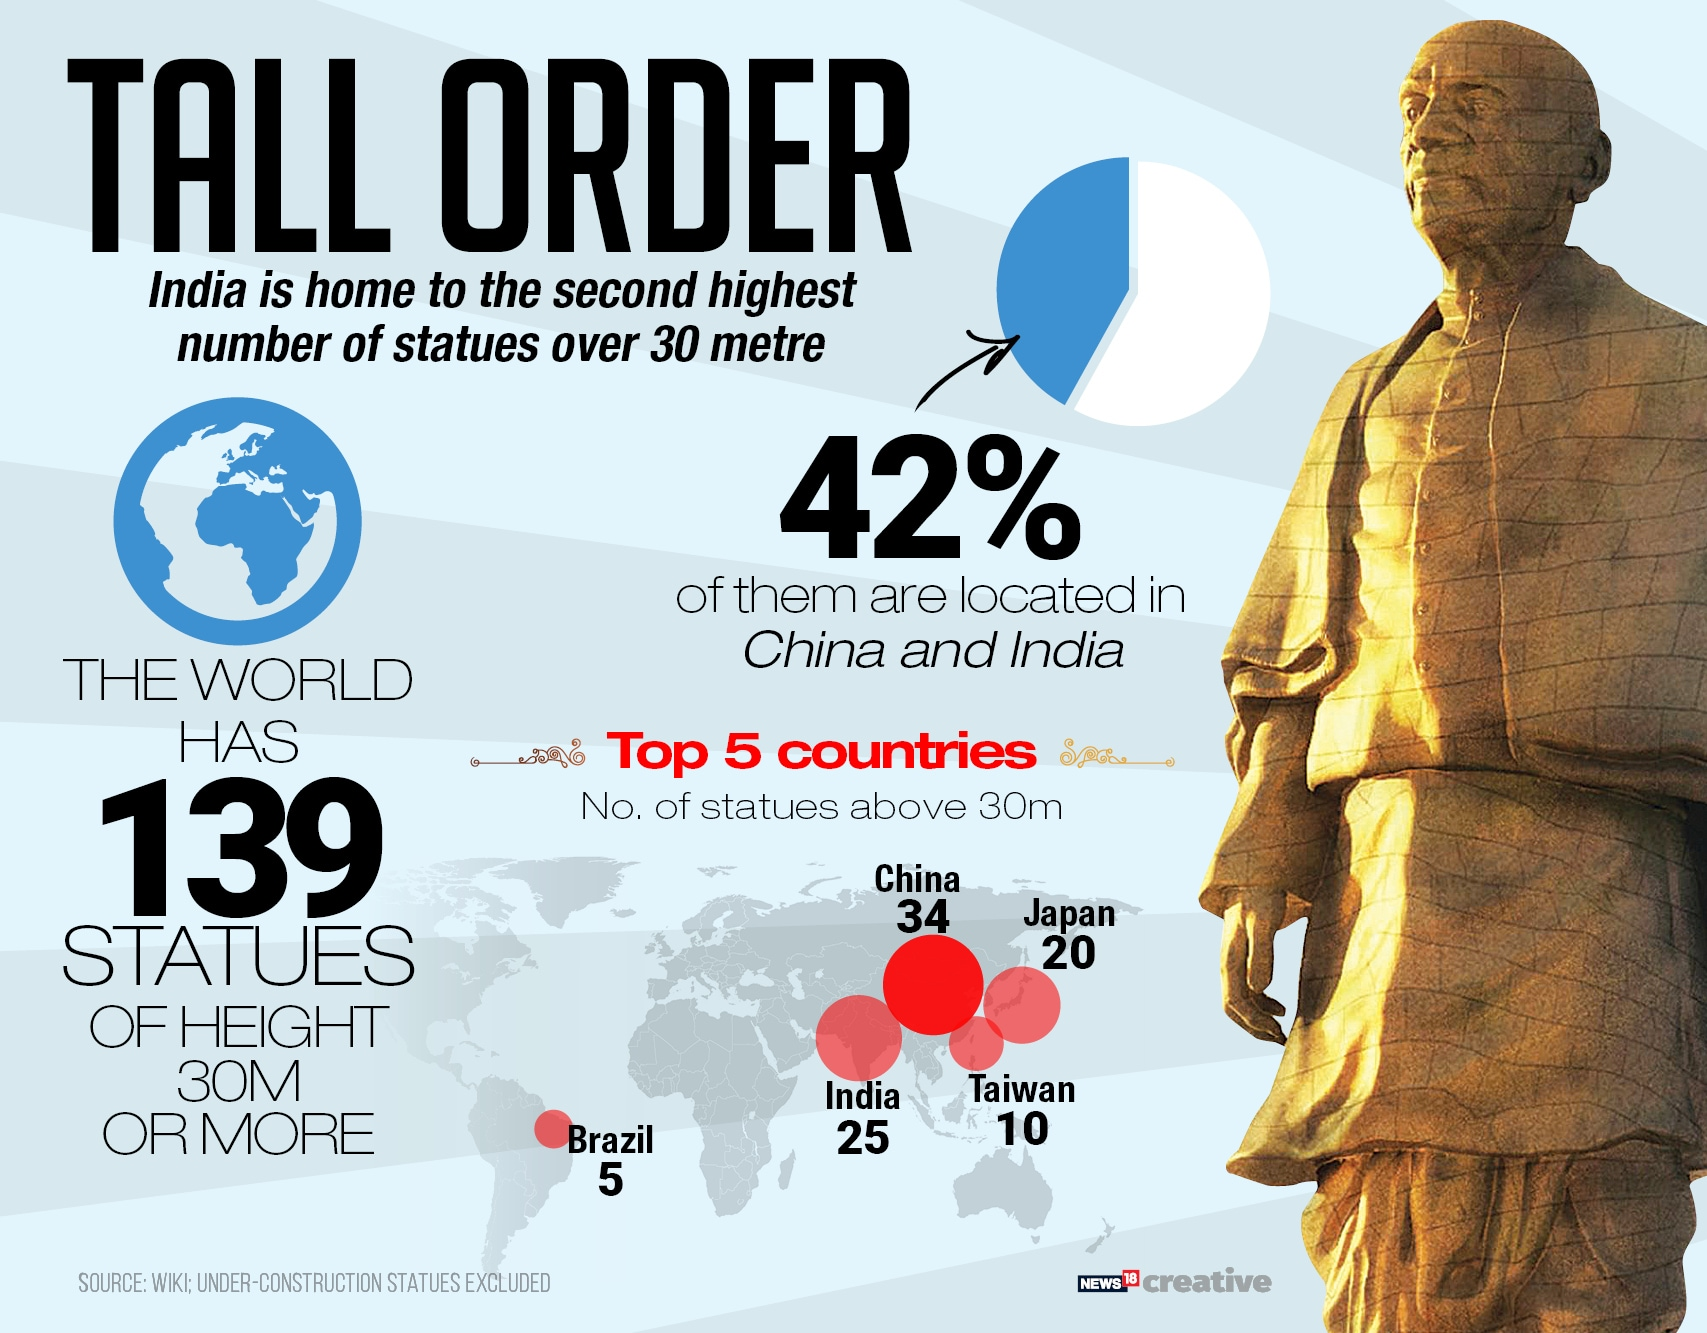 Statue of Unity: Here are some interesting facts about the